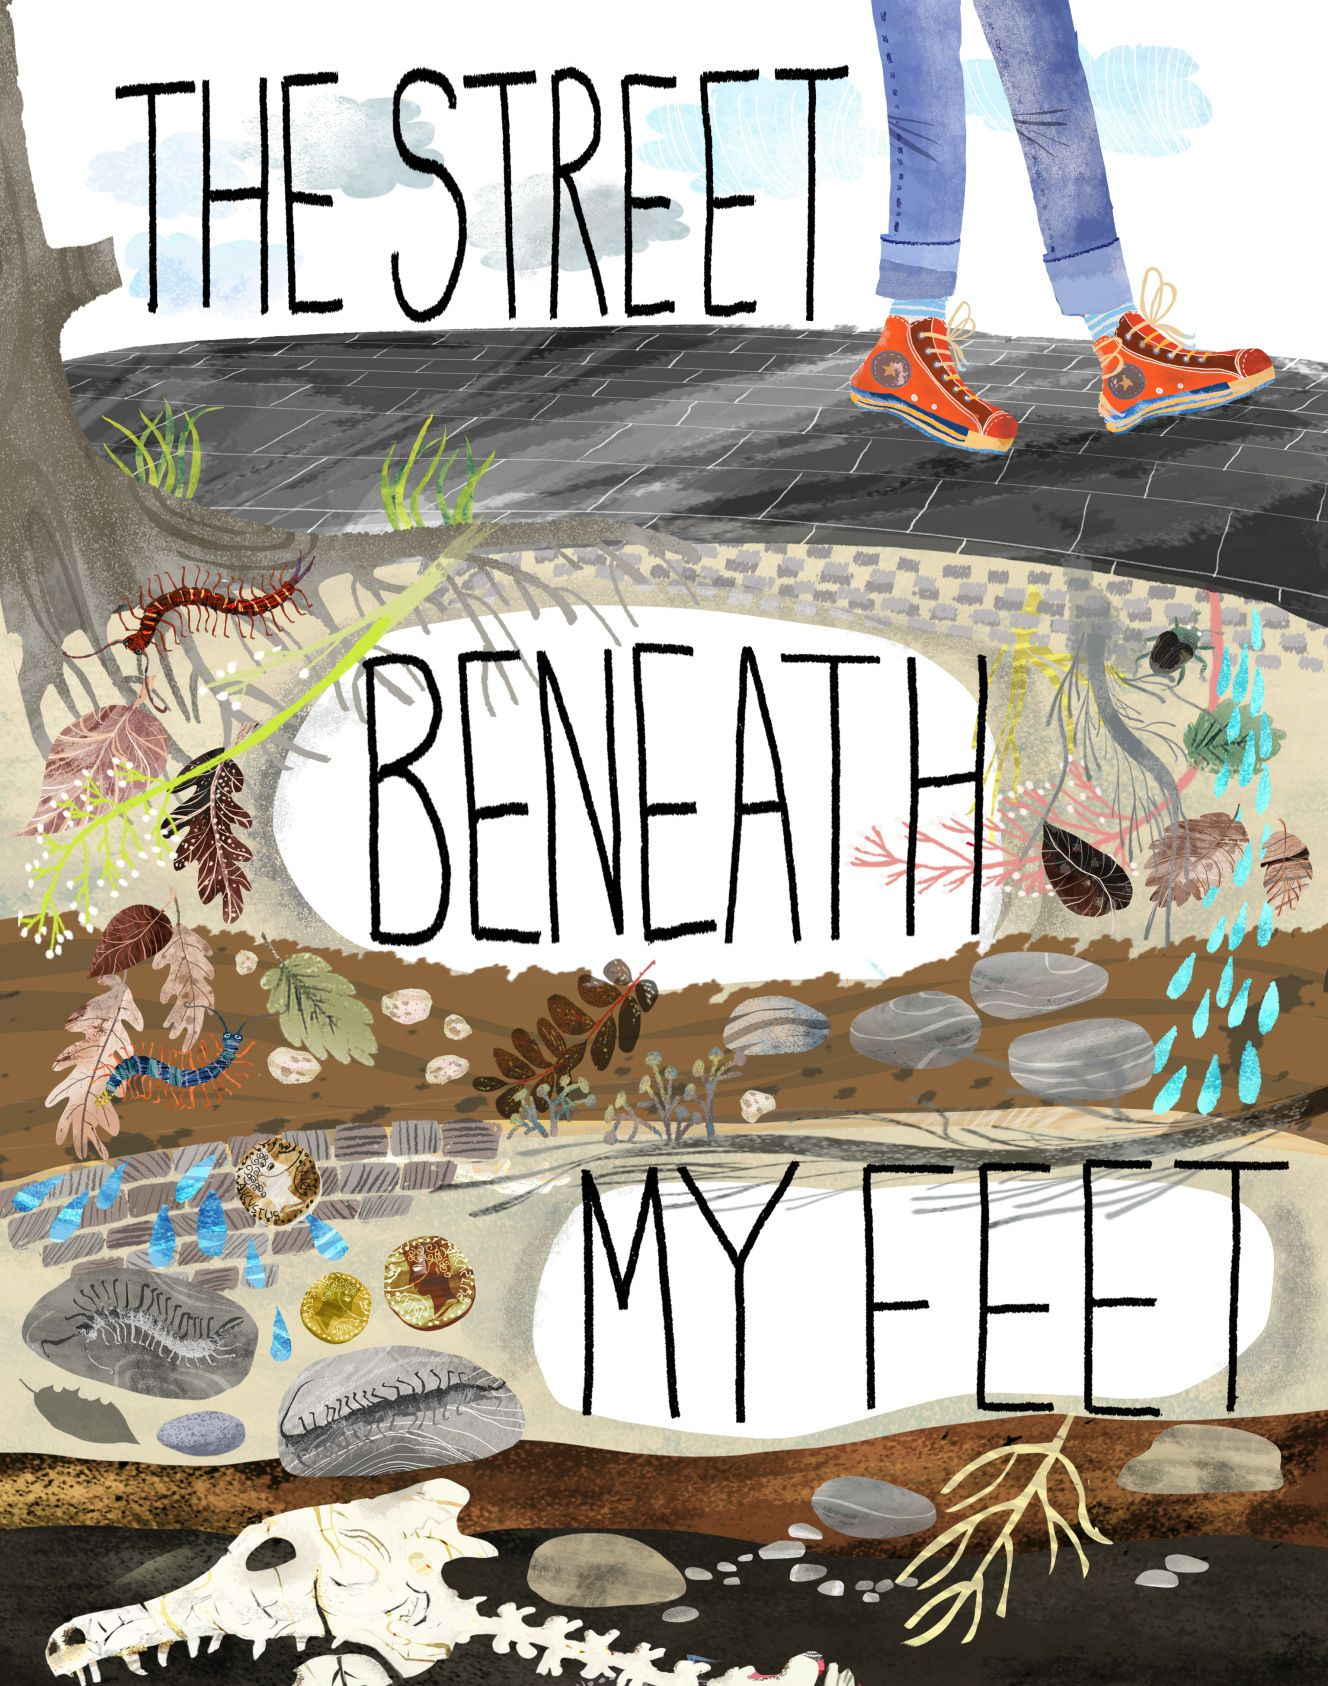 Image result for the street beneath my feet activities